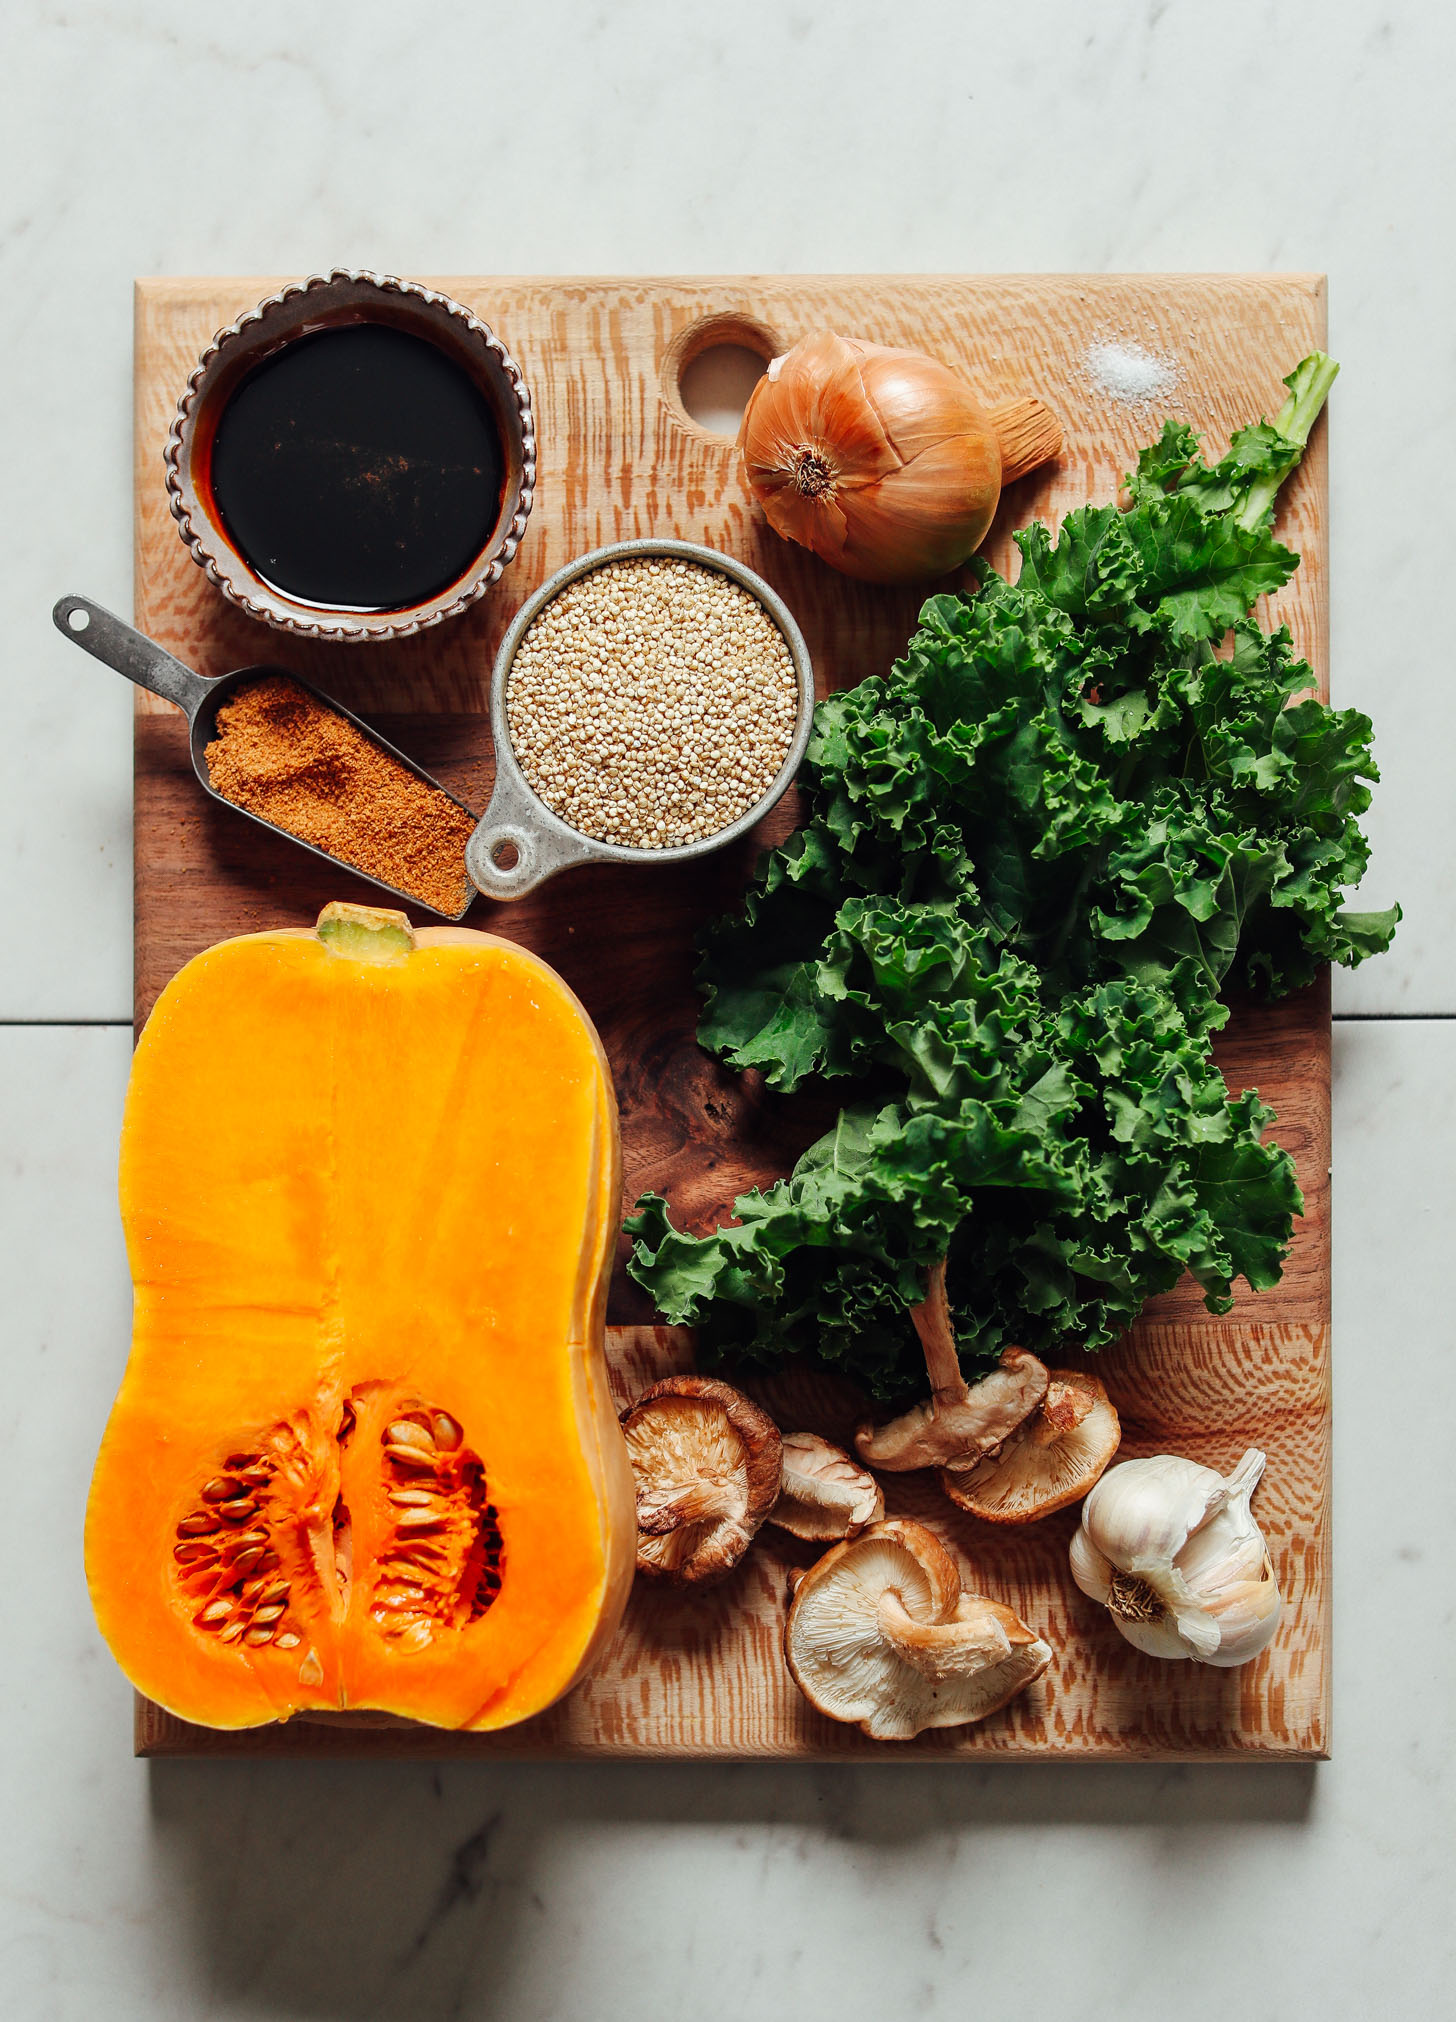 Cutting board with ingredients for making holiday stuffed butternut squash